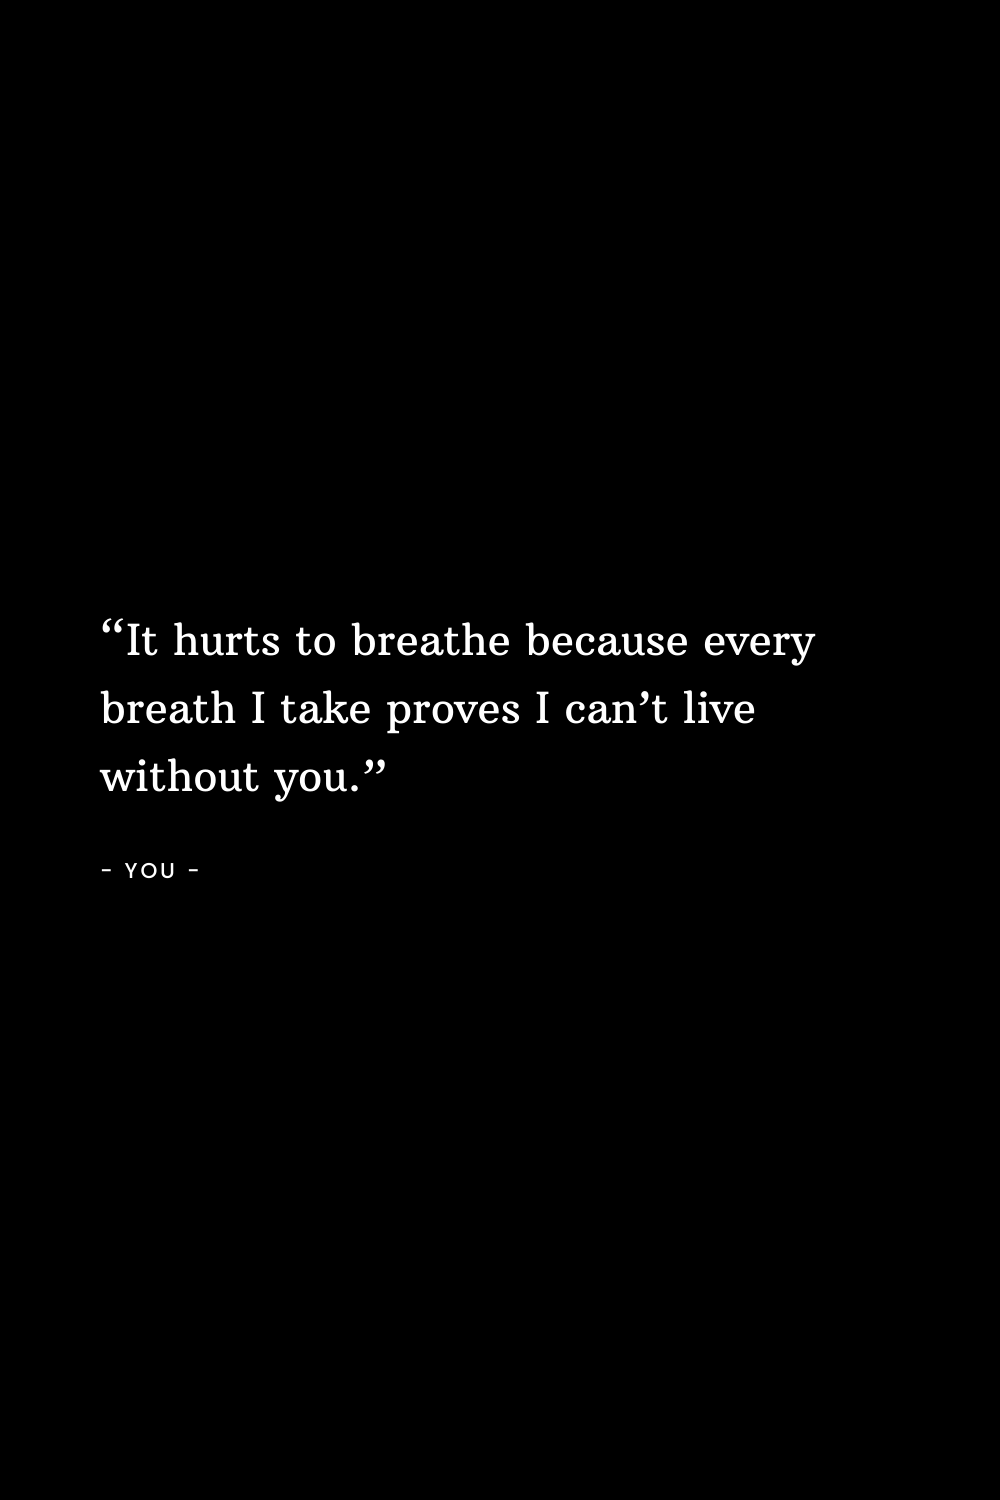 It hurts to breathe because every breath I take proves I can't live without you.